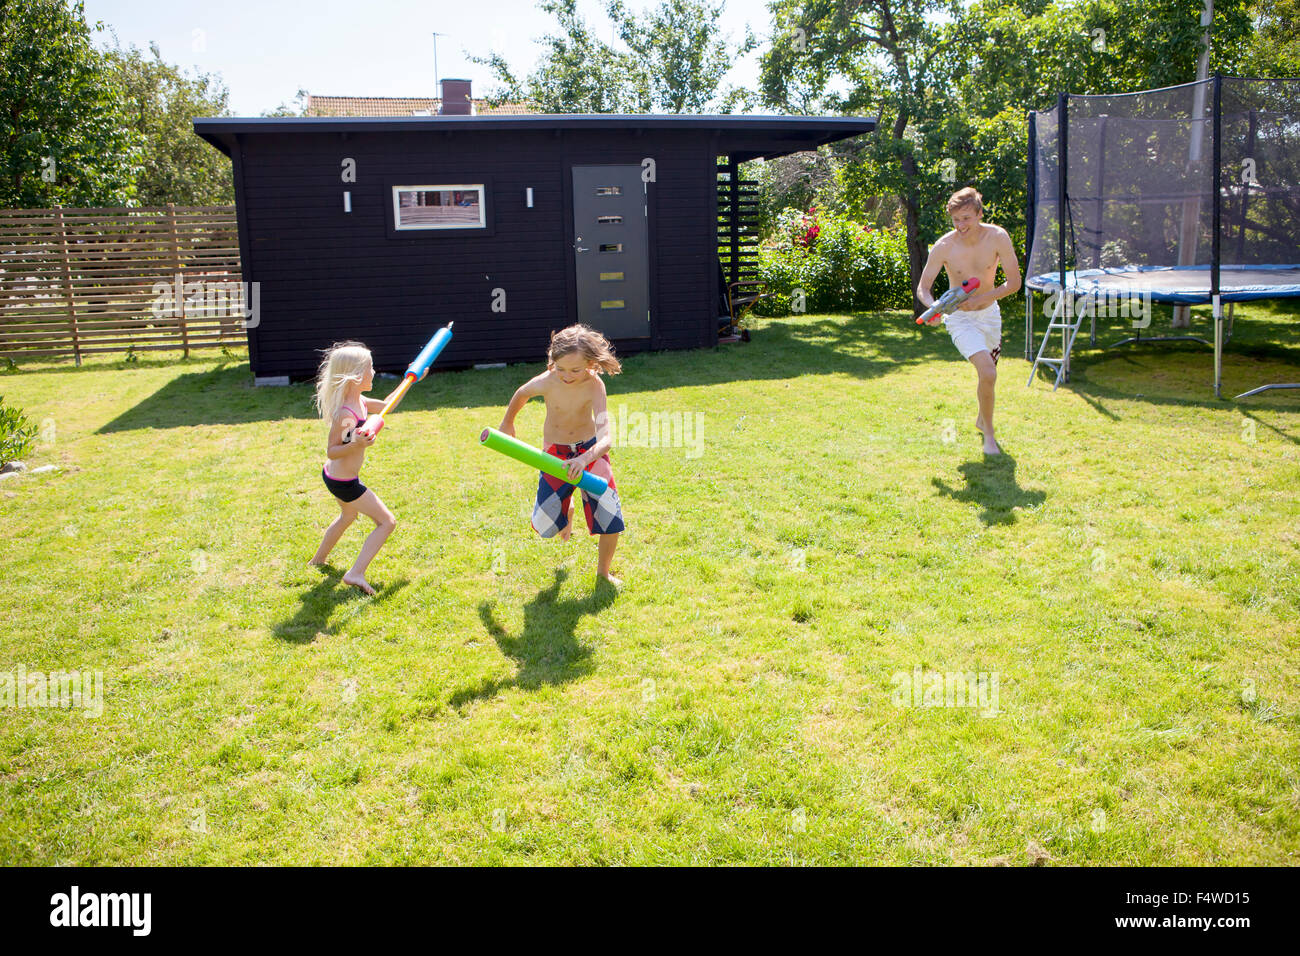 Siblings (8-9, 10-11) playing with water guns in backyard - Stock Image